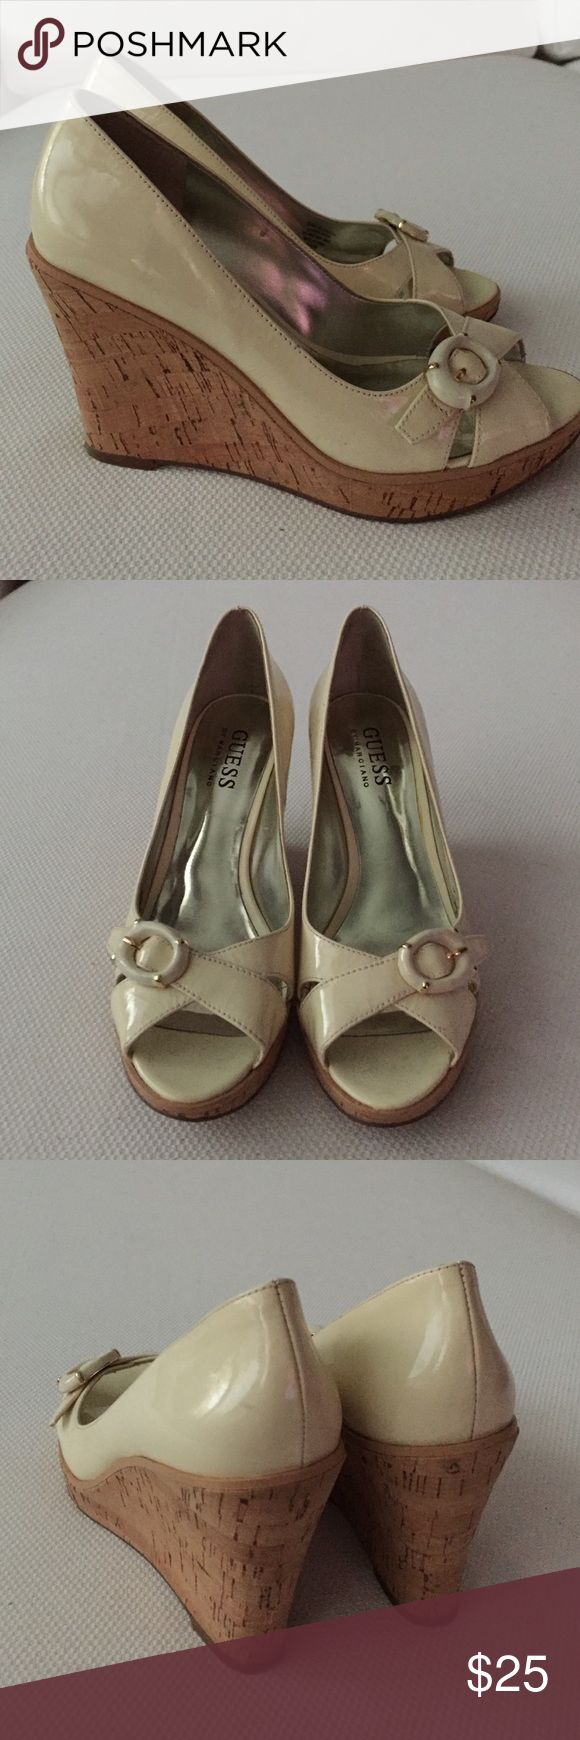 Guess Marciano Wedge Cream and cork wedges Guess by Marciano Shoes Wedges